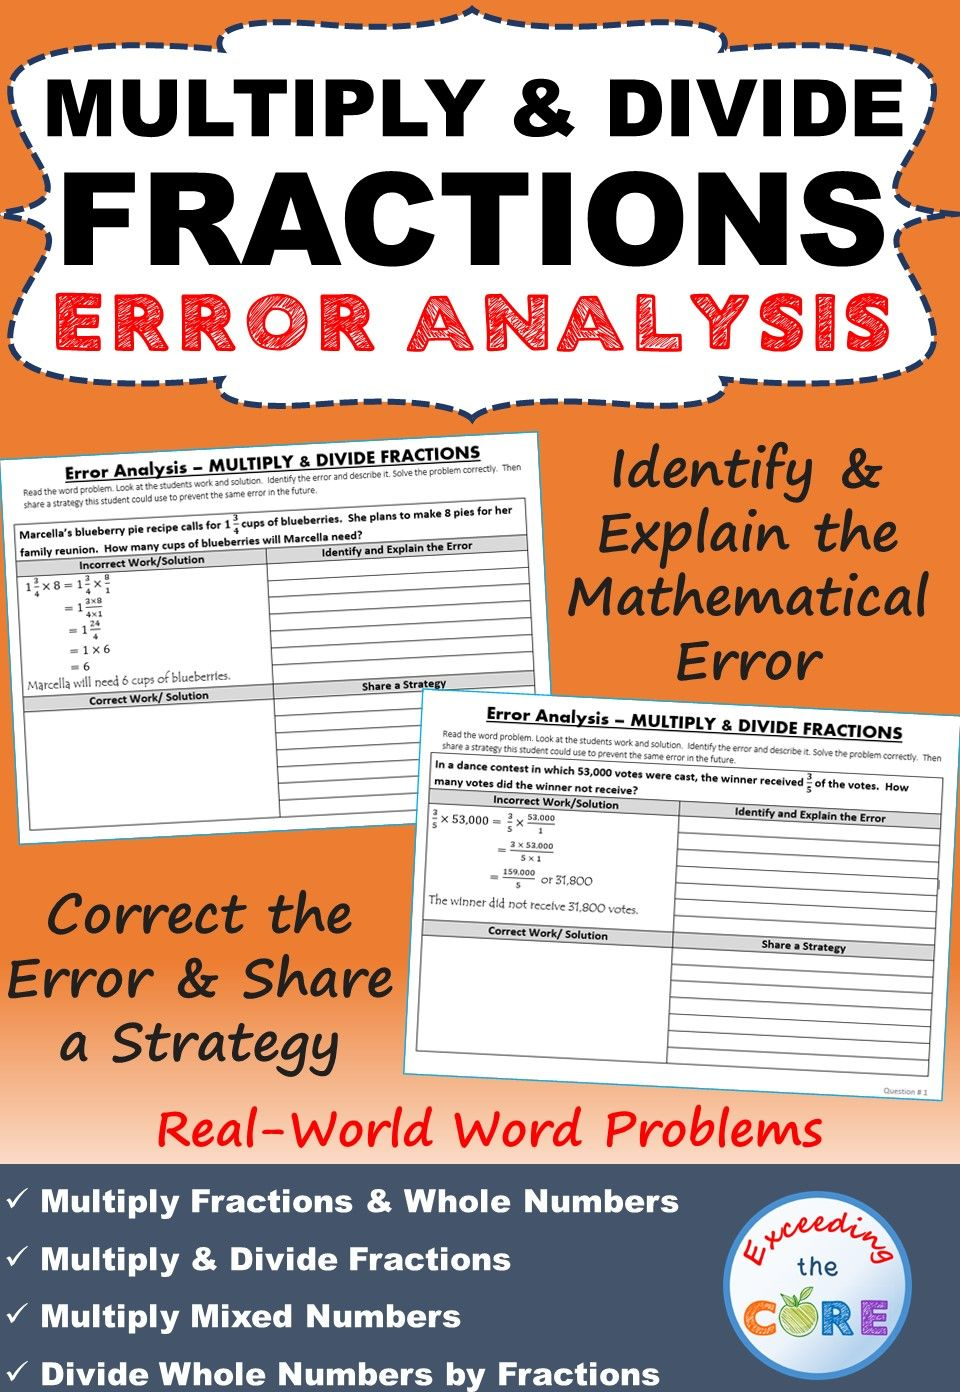 multiply & divide fractions word problems - error analysis (find the